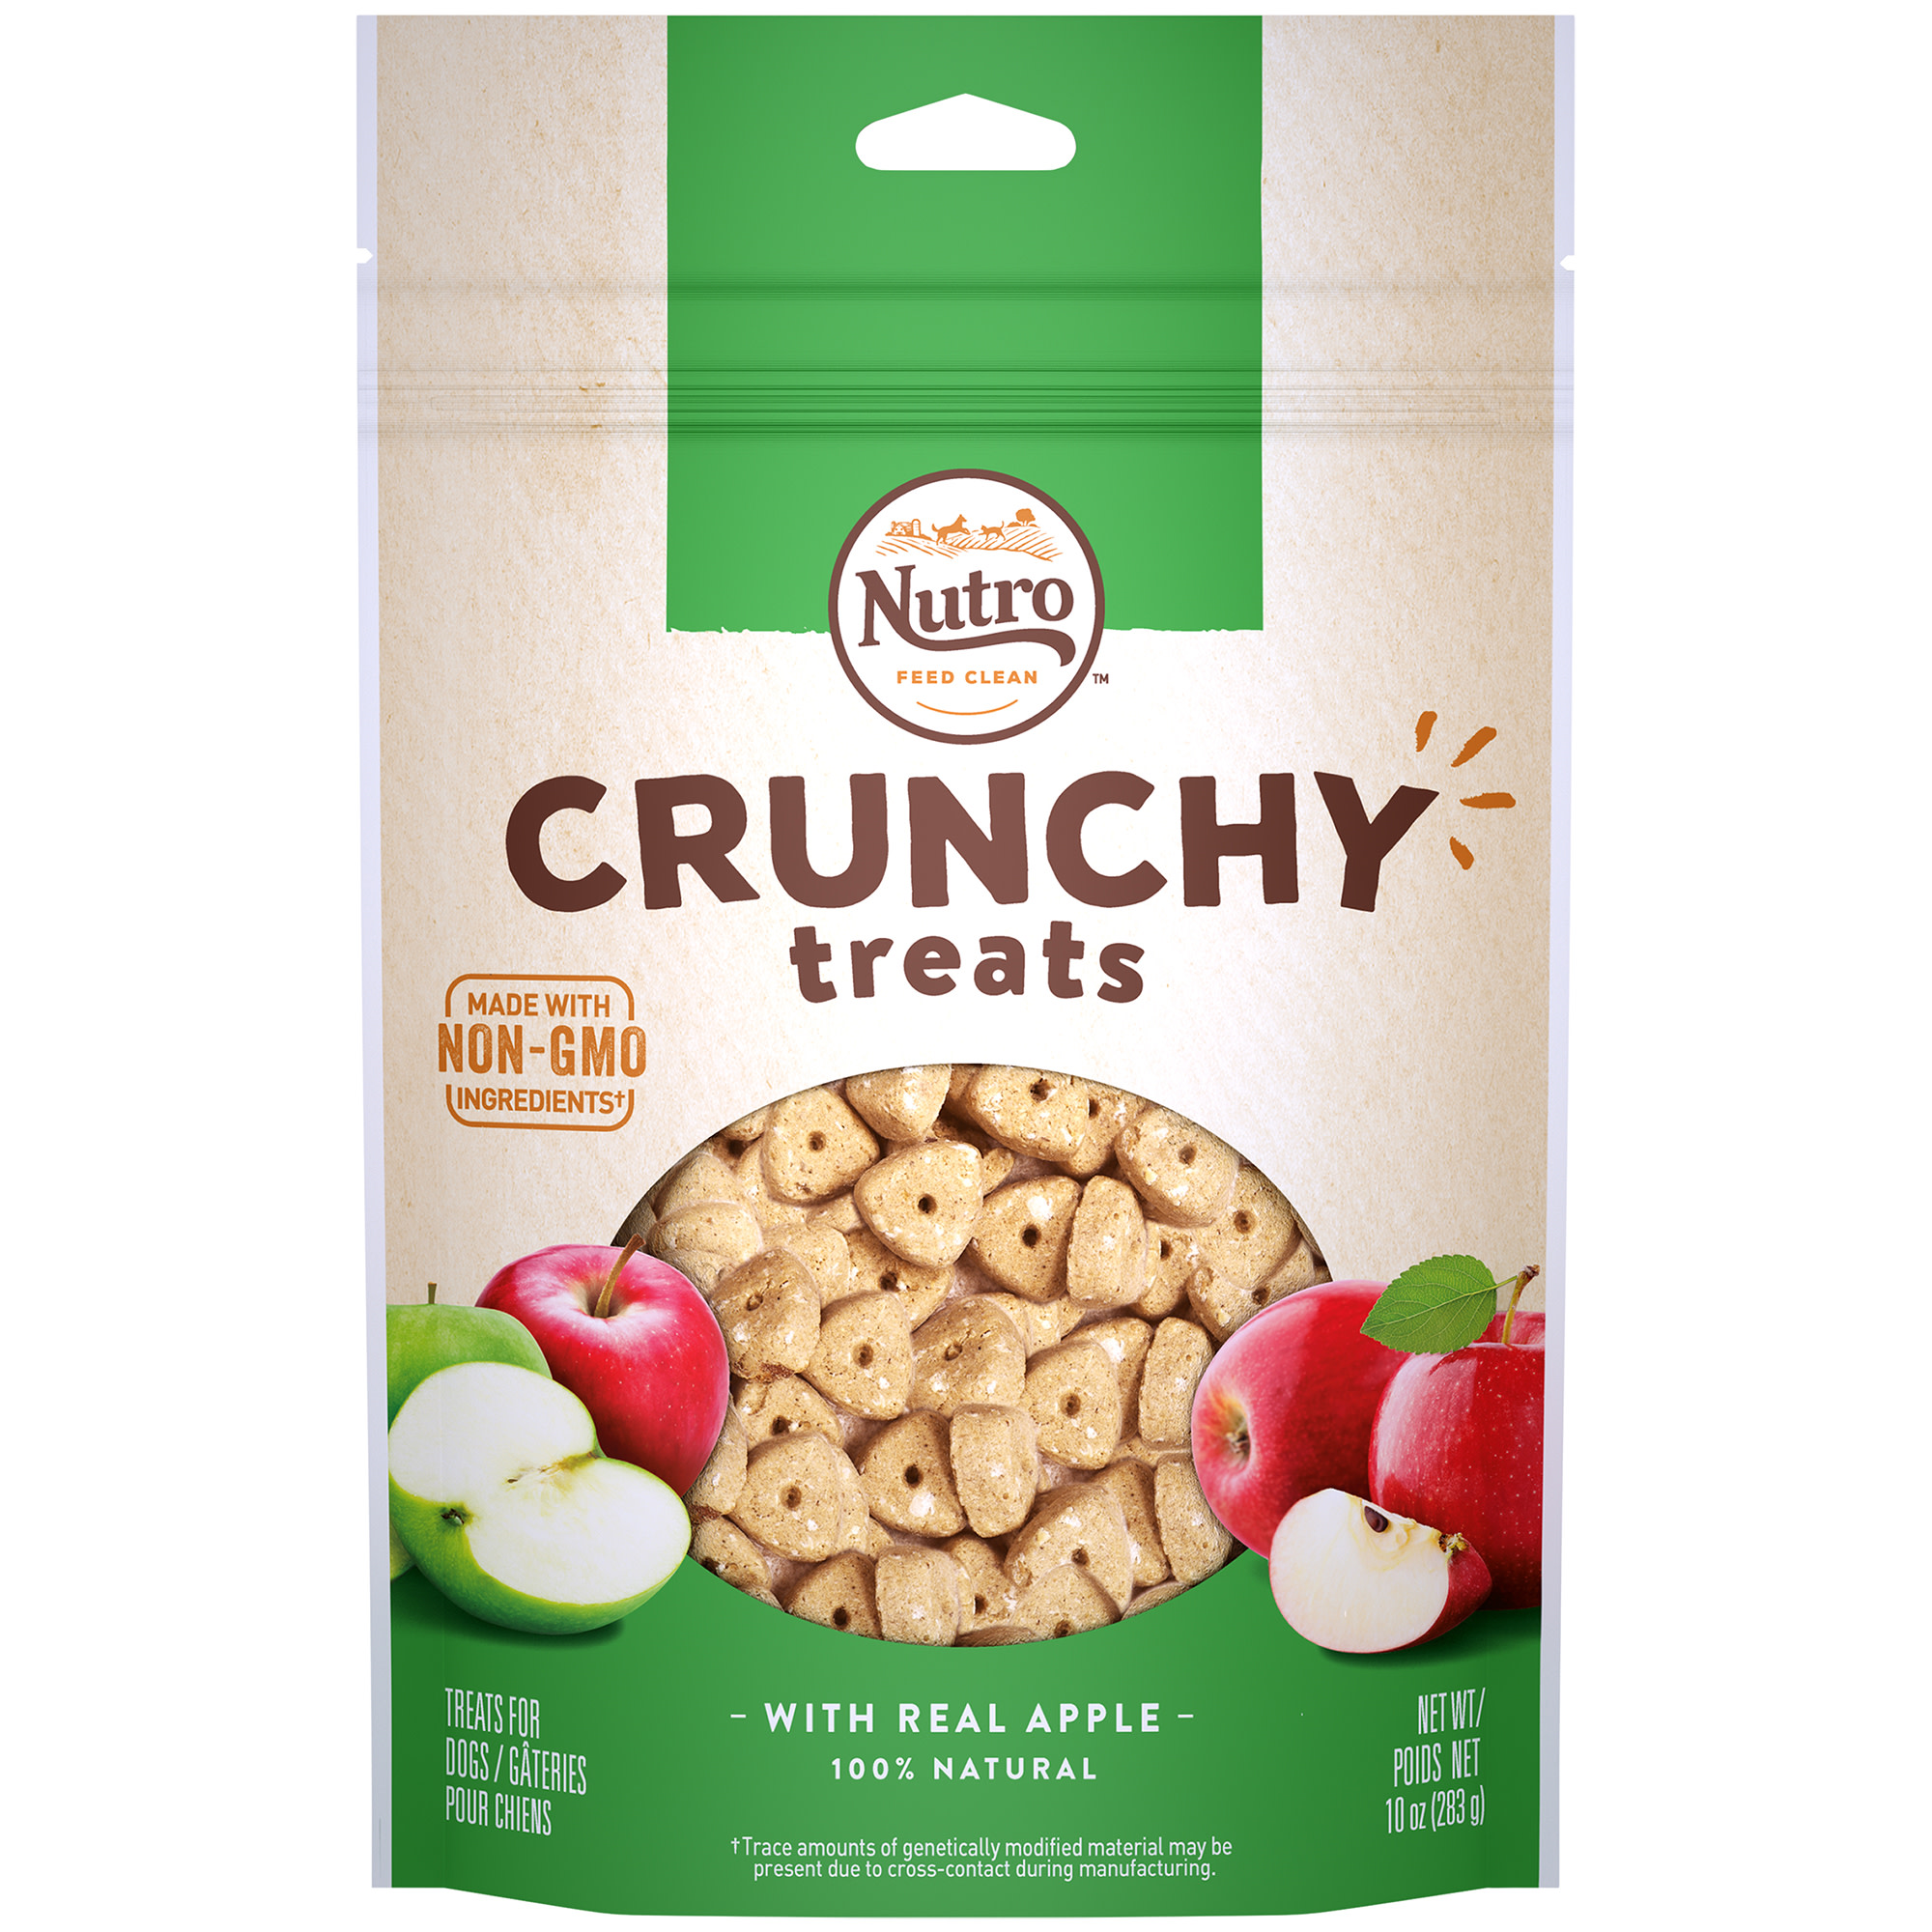 Nutro Crunchy Dog Treats with Real Apple, 10 Oz Bag by Mars Petcare Us